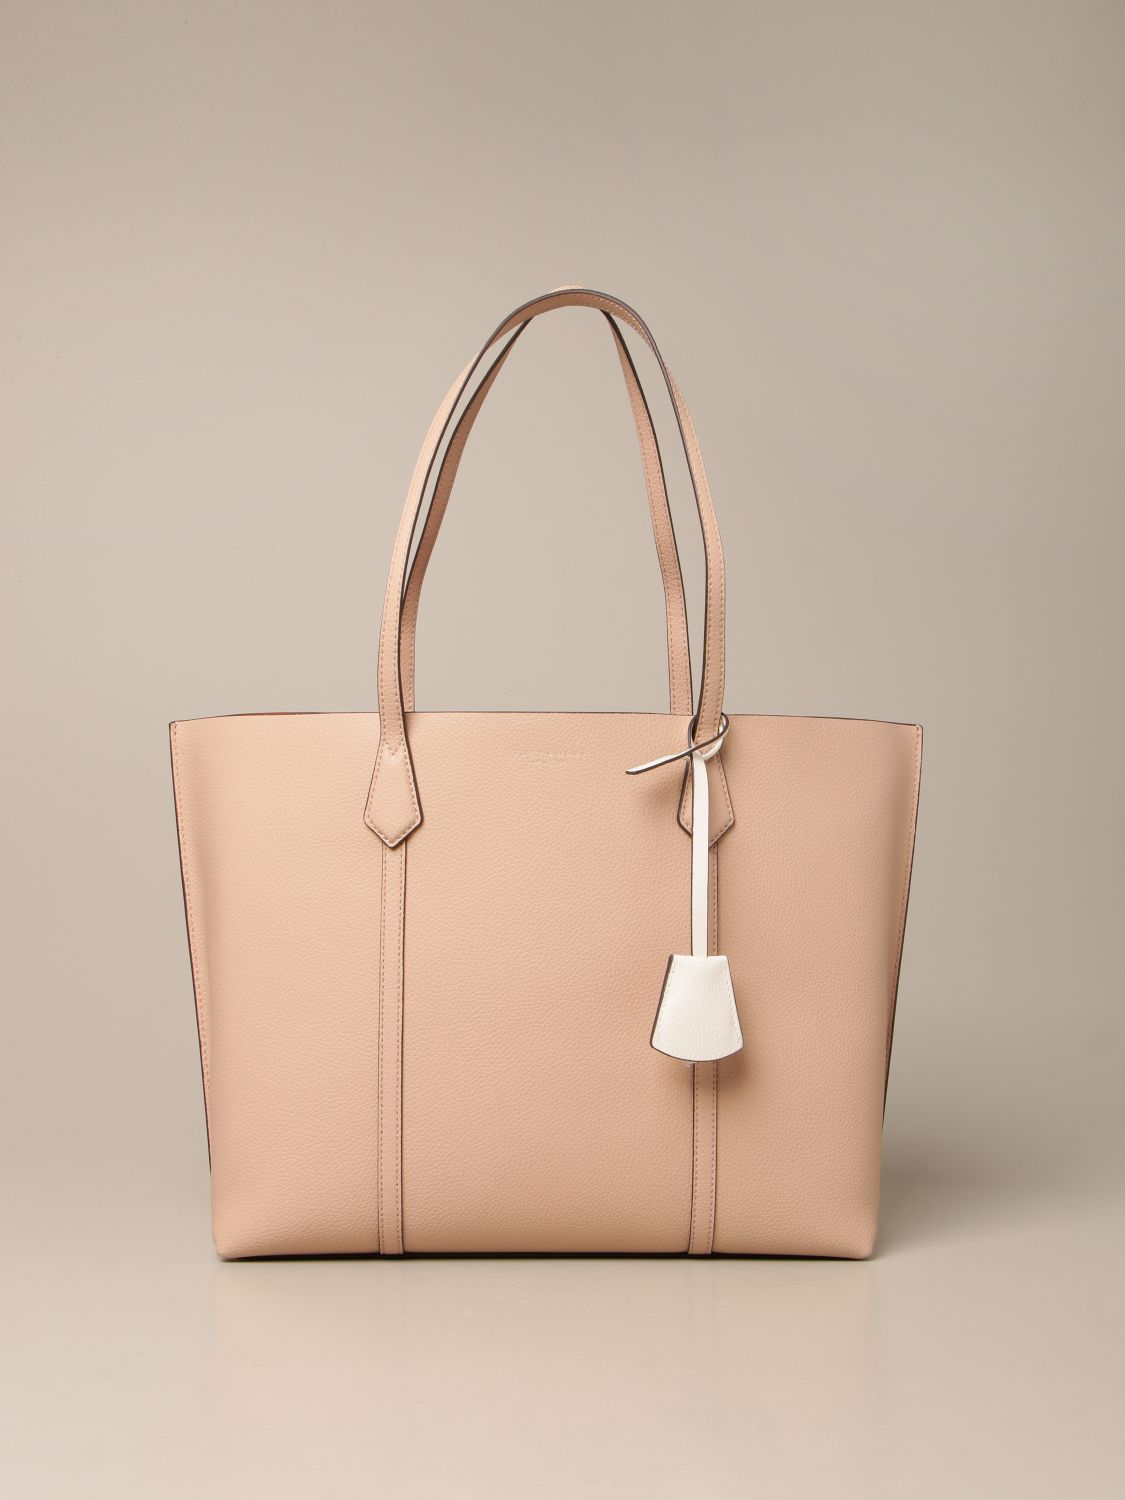 Handbag Tory Burch: Perry Tory Burch bag in textured leather pink 1